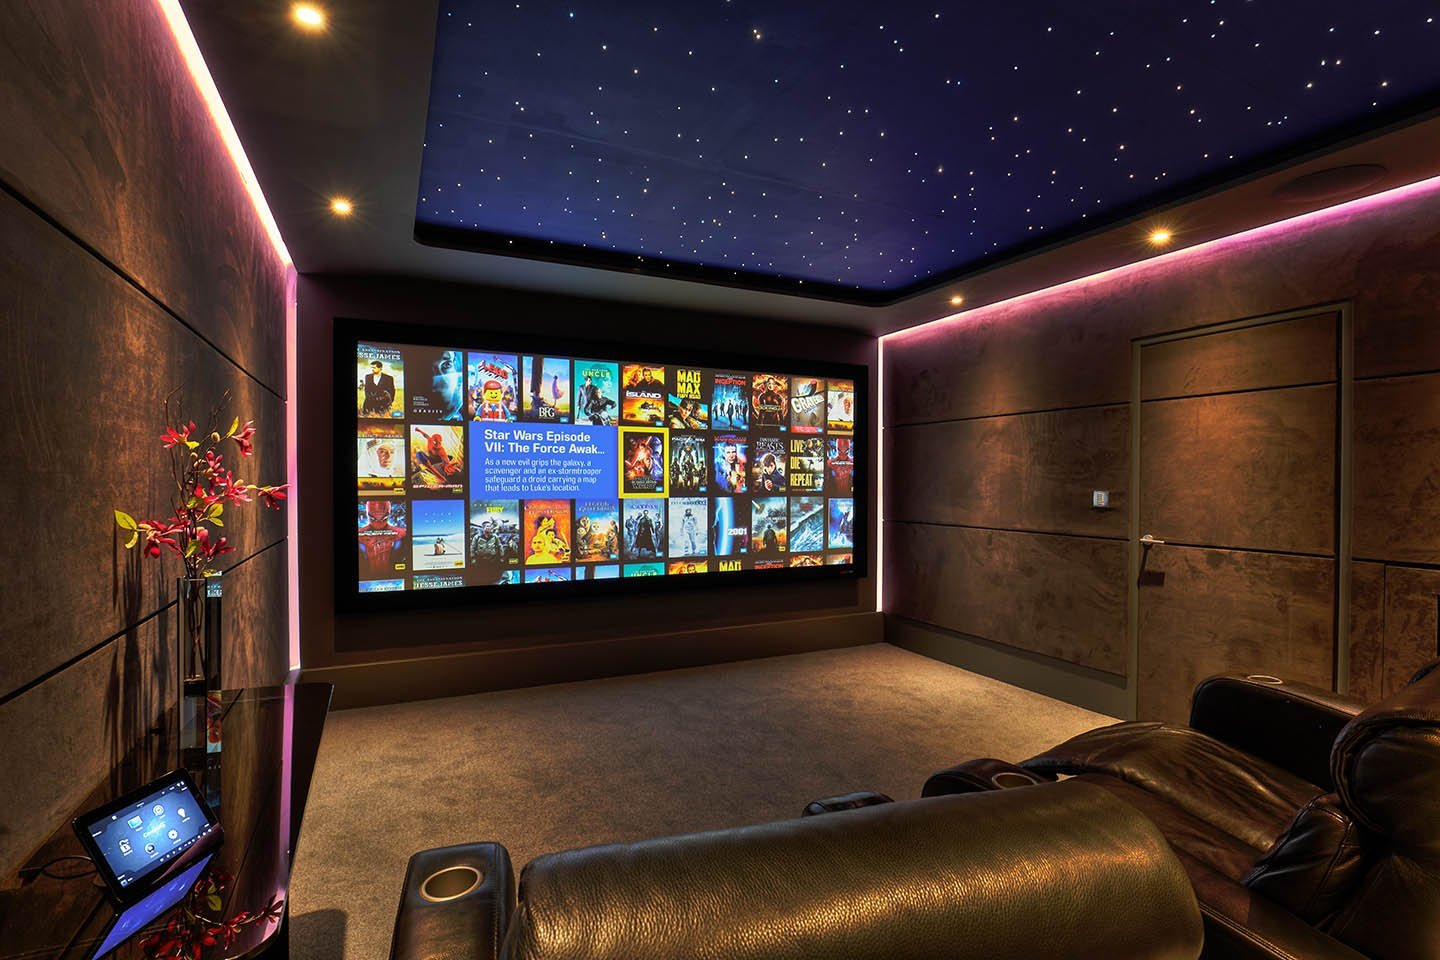 Wide view of Kaleidescape at New Wave AV Home Cinema Demonstration